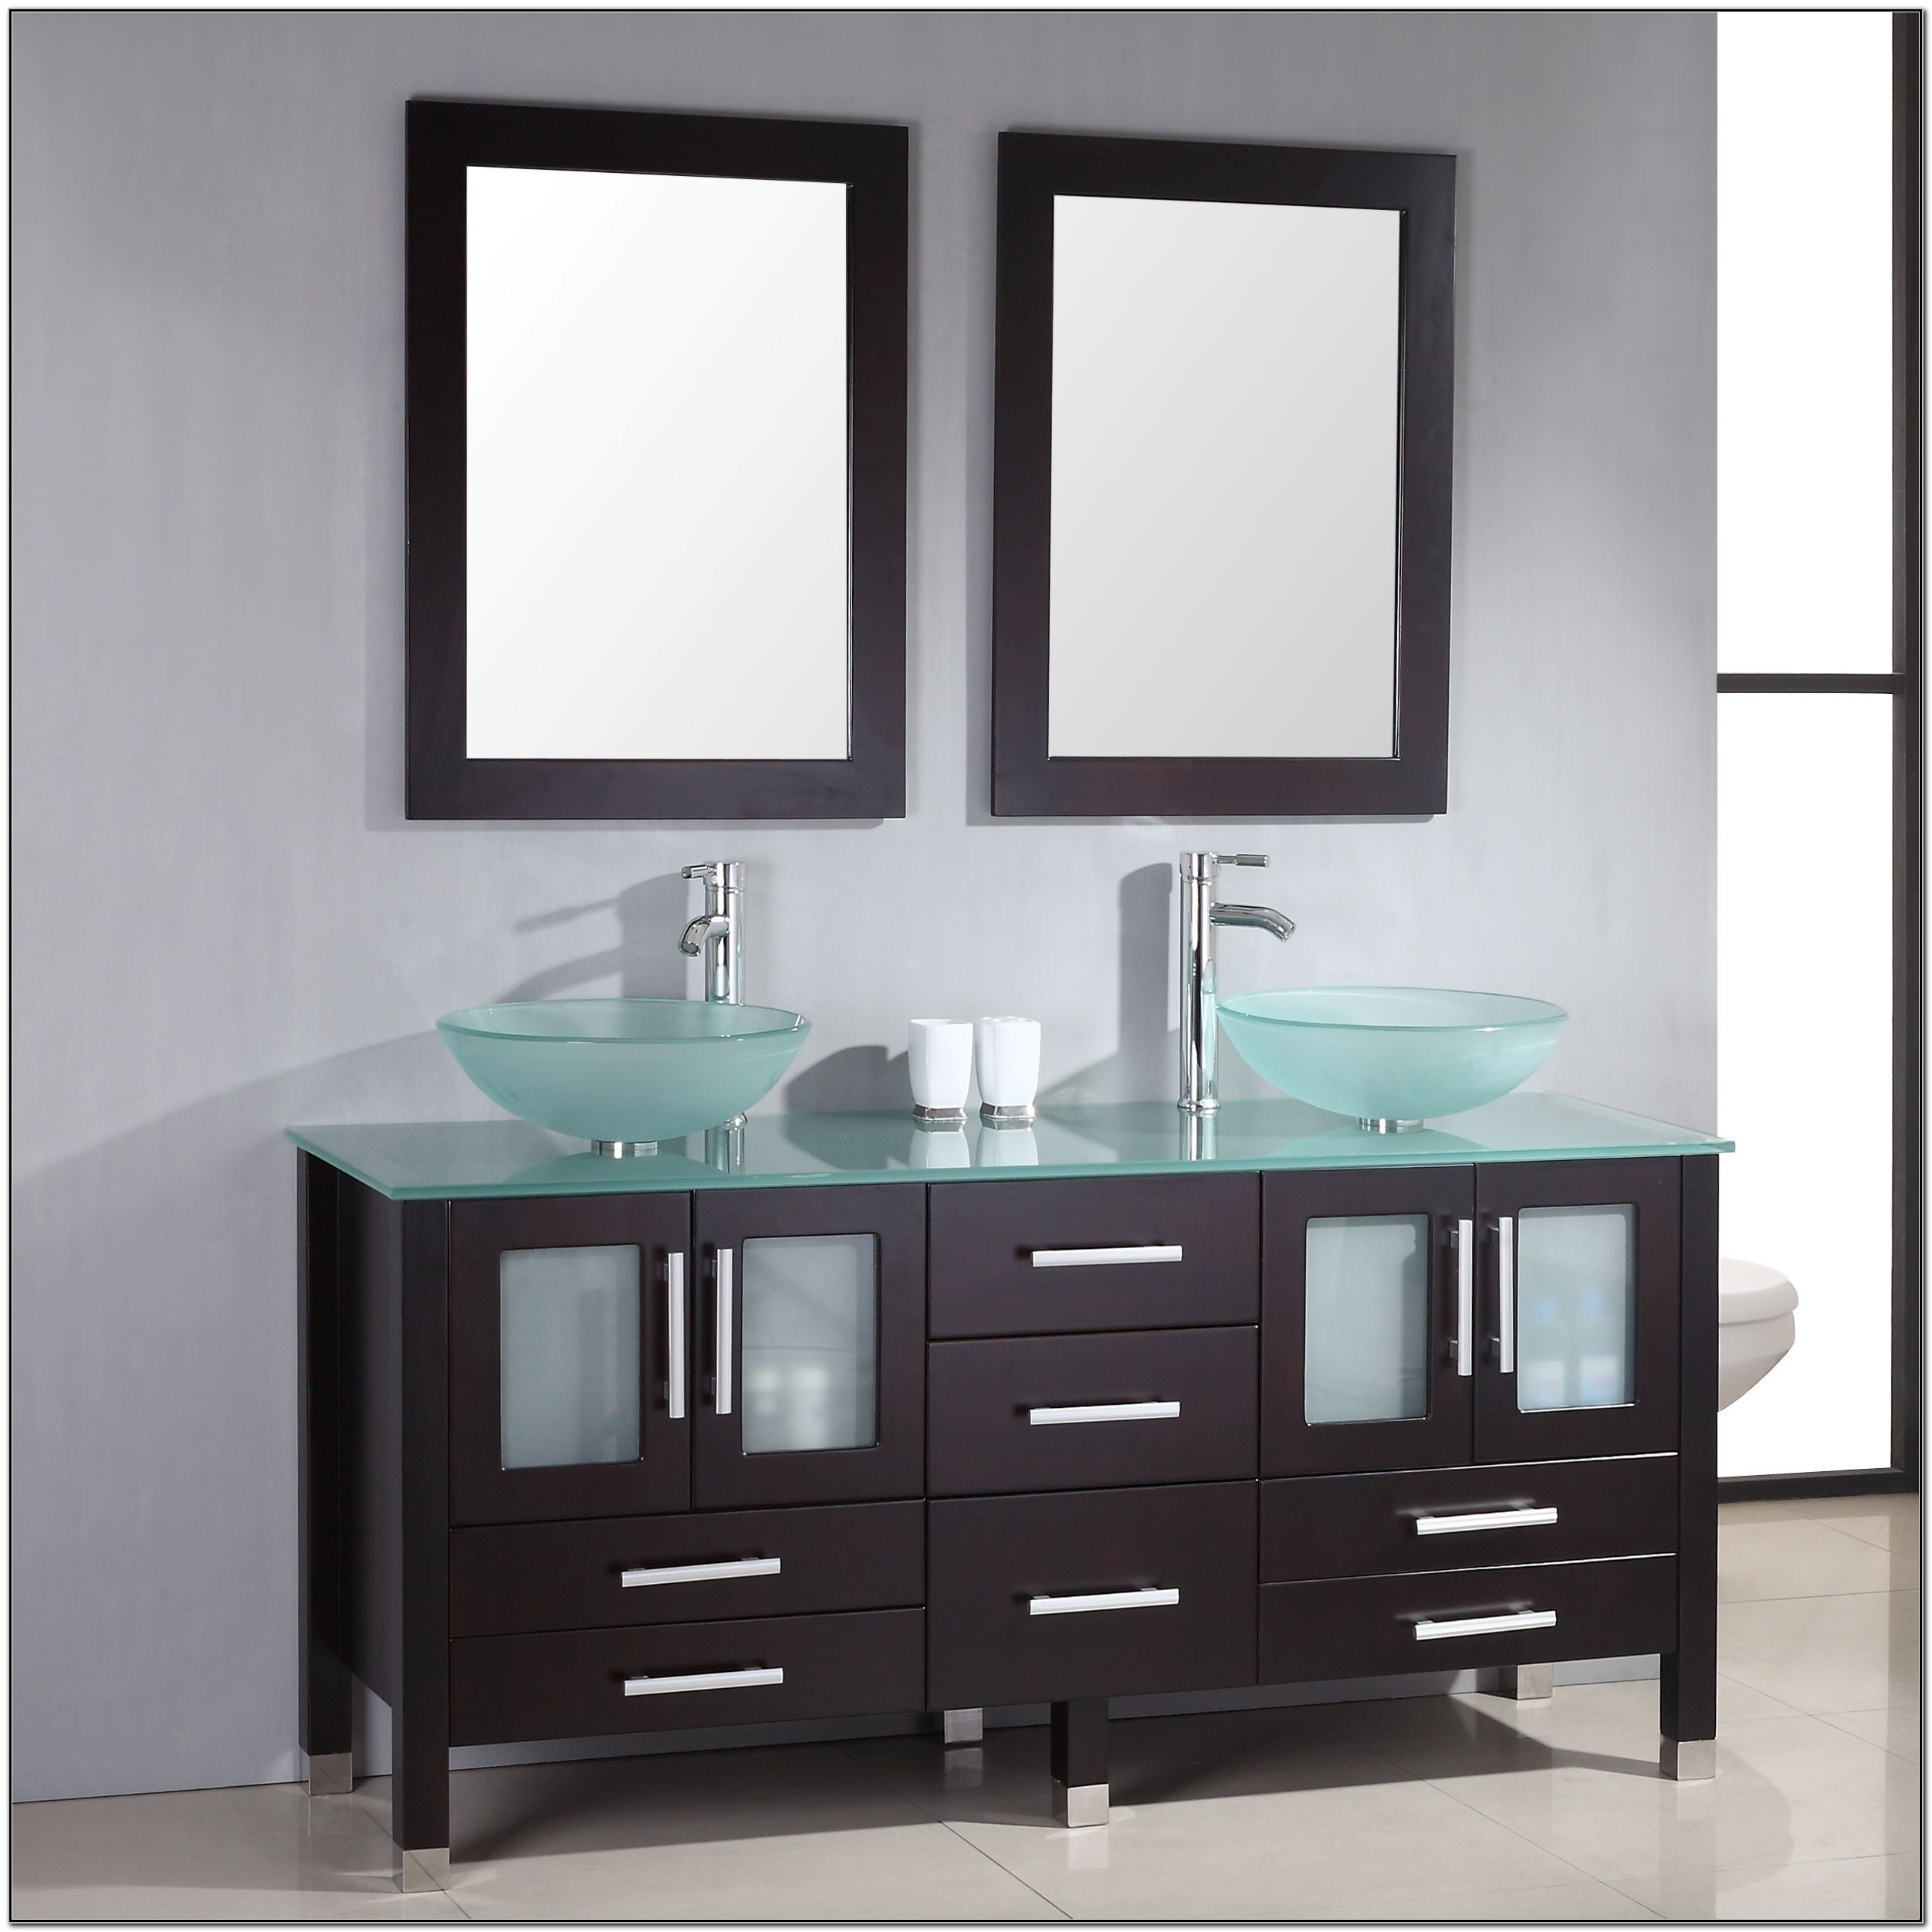 Glass Bowl Sink Vanity Cabinet Sink And Faucets Home Decorating